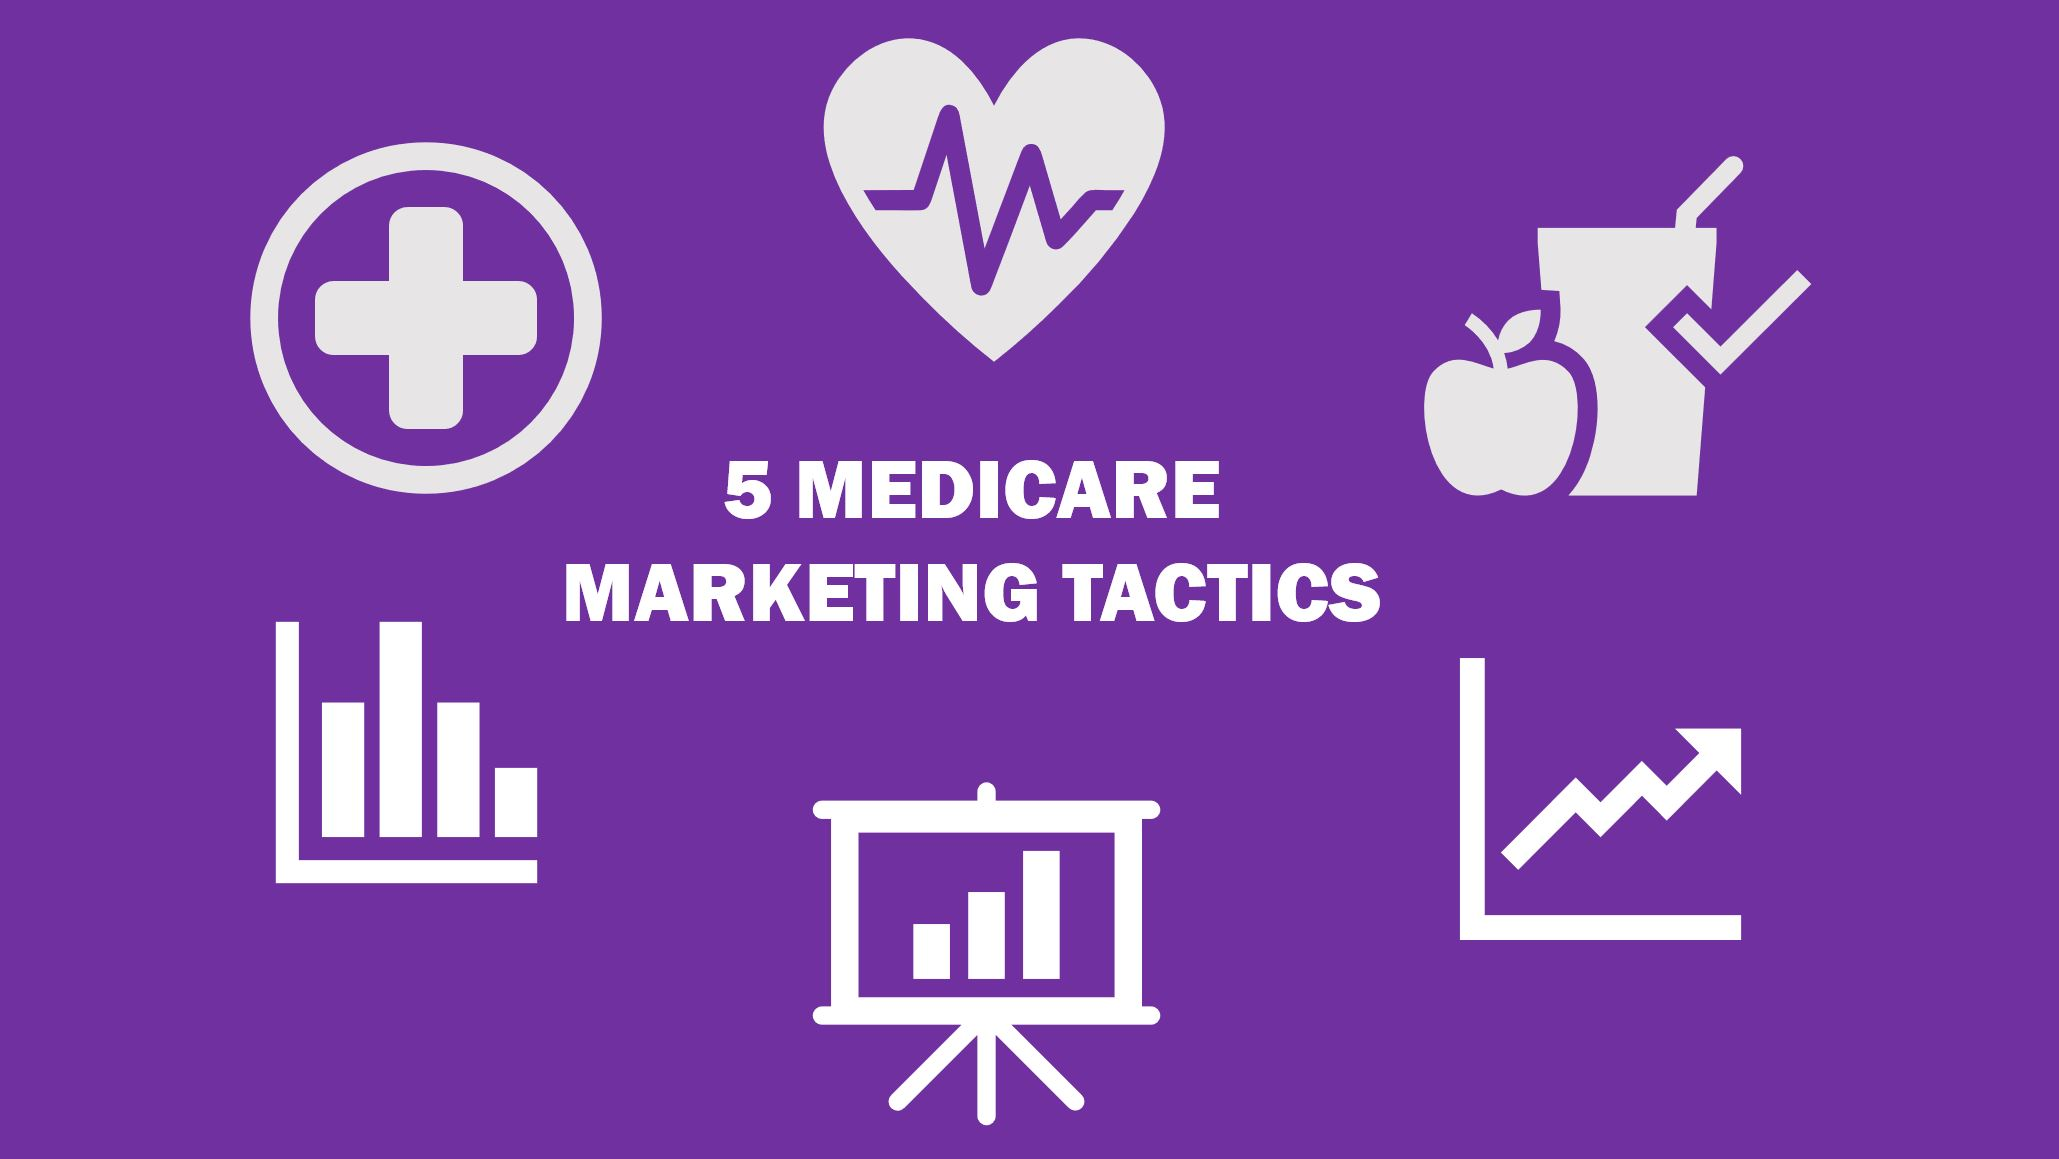 5 Medicare Marketing Tactics You Have to Use to Generate More Leads